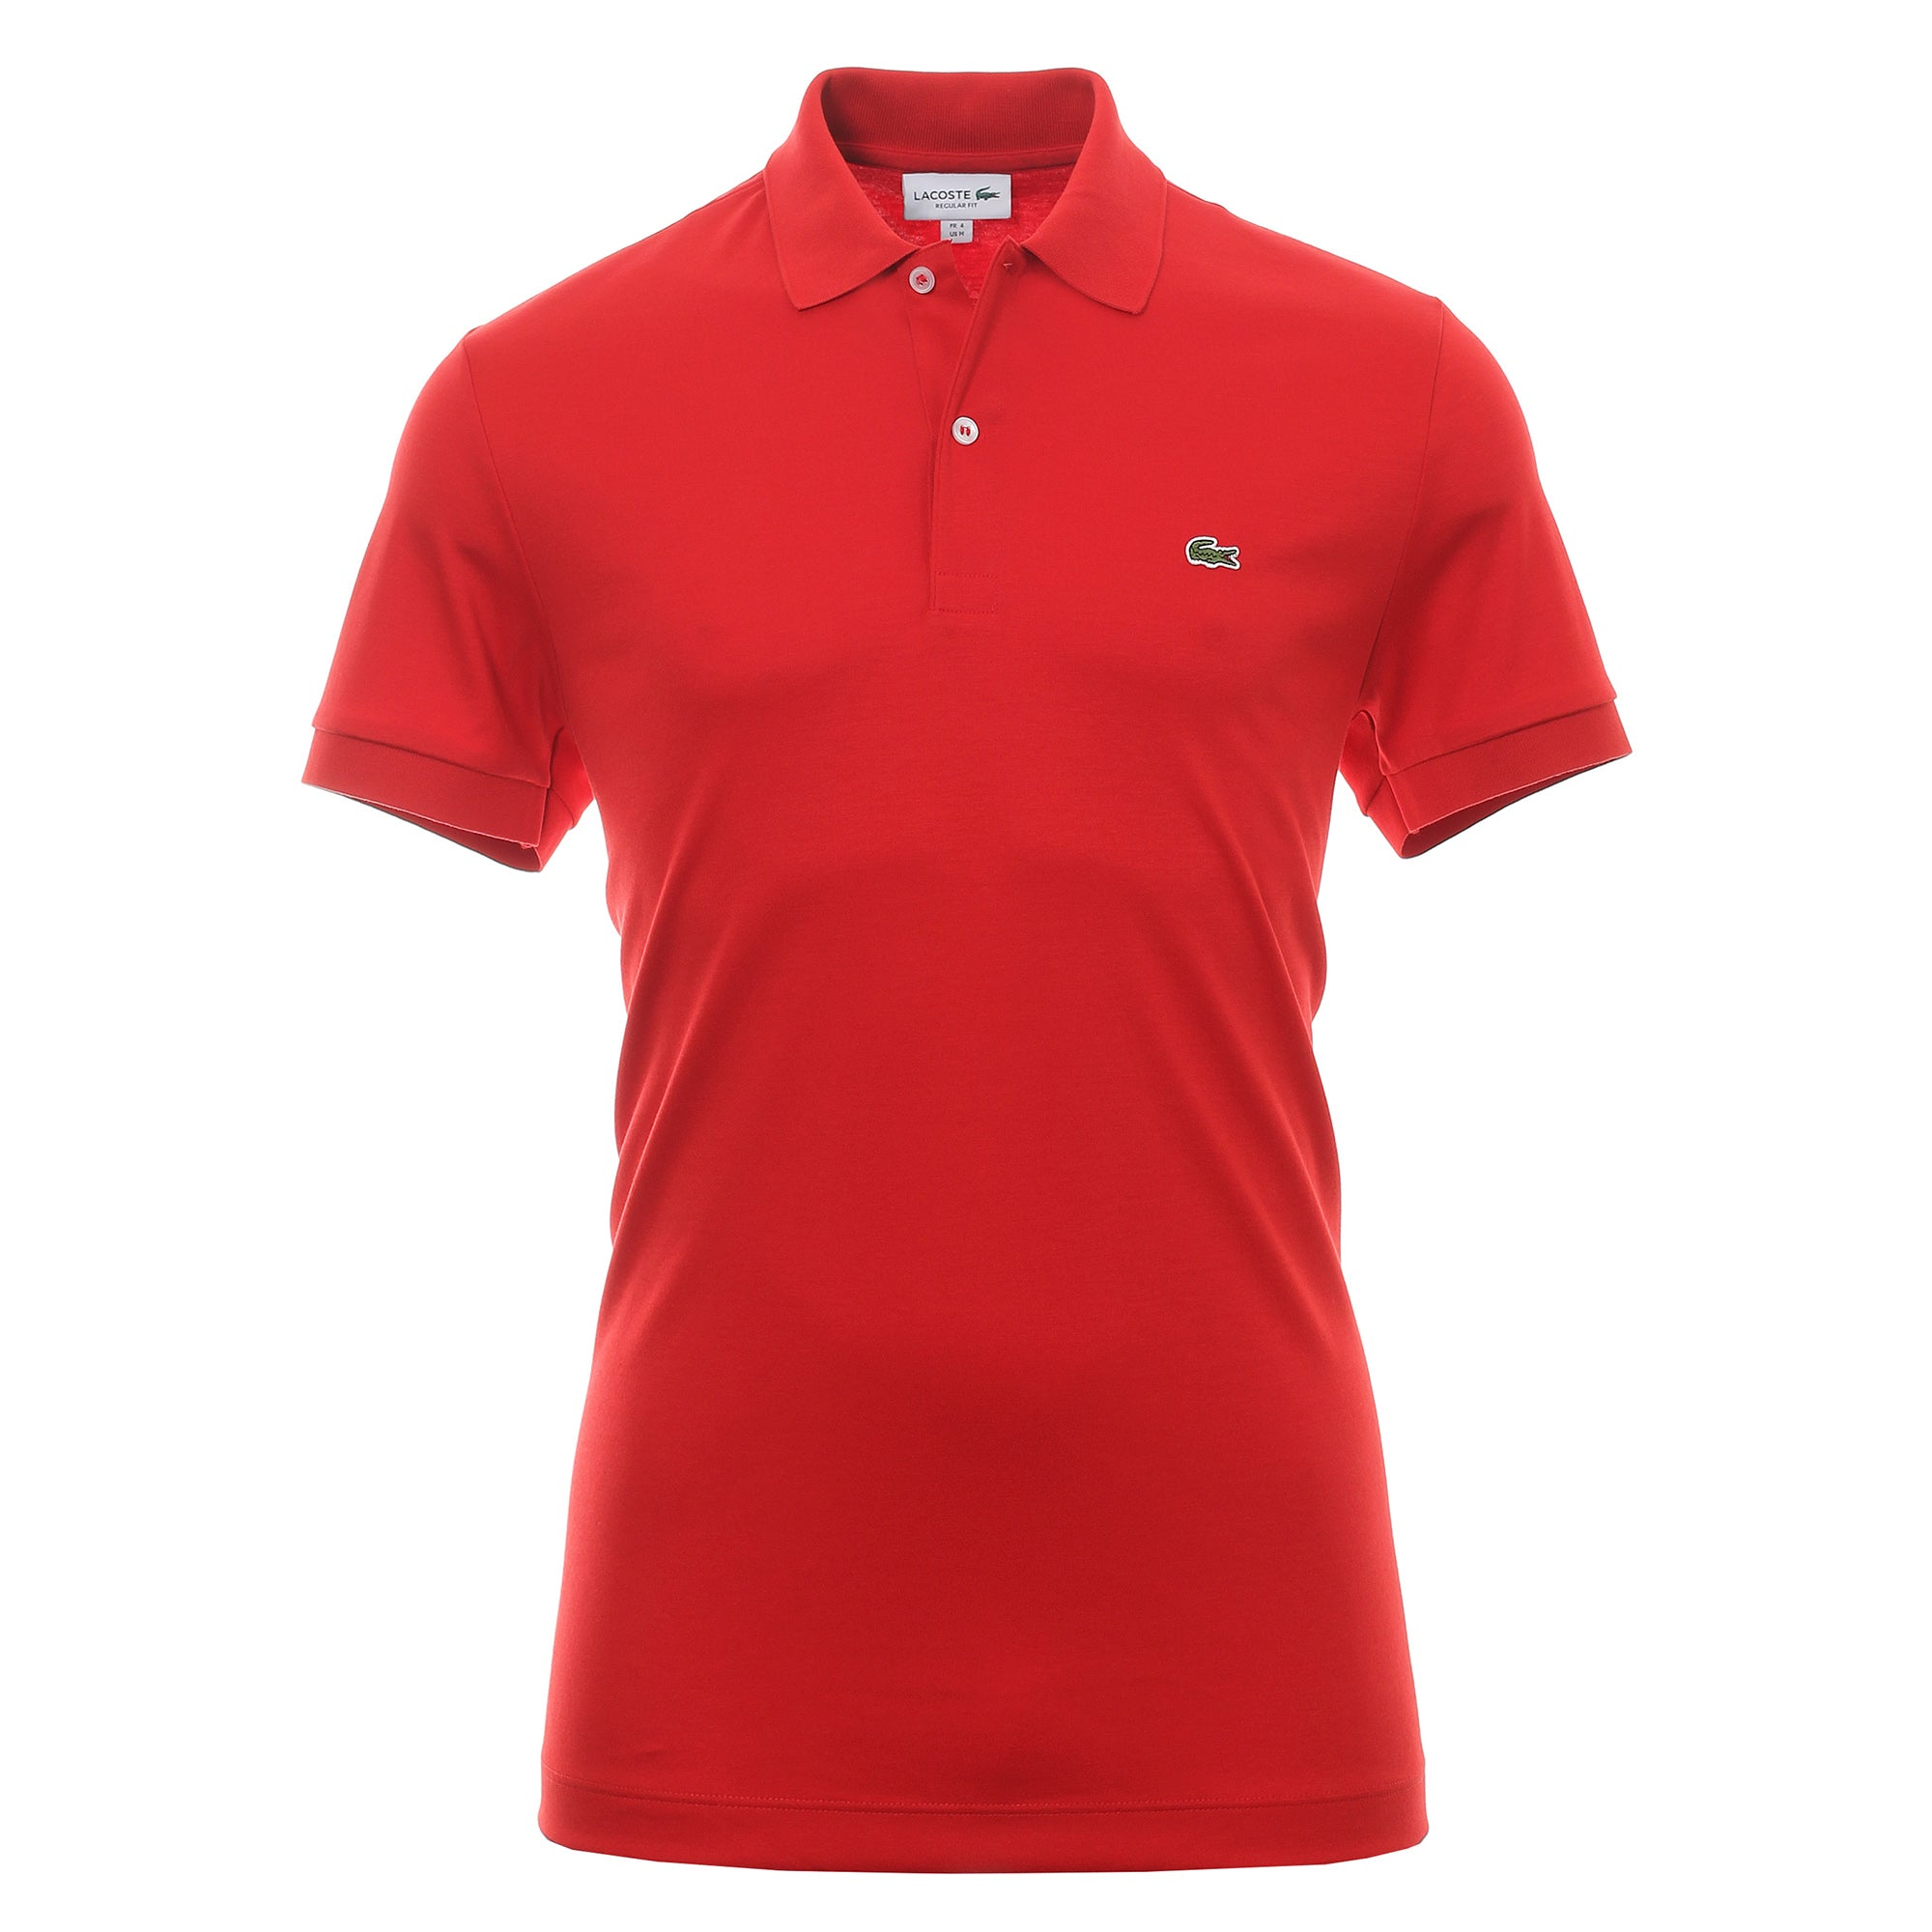 Lacoste Pima Cotton Interlock Polo Shirt DH2050